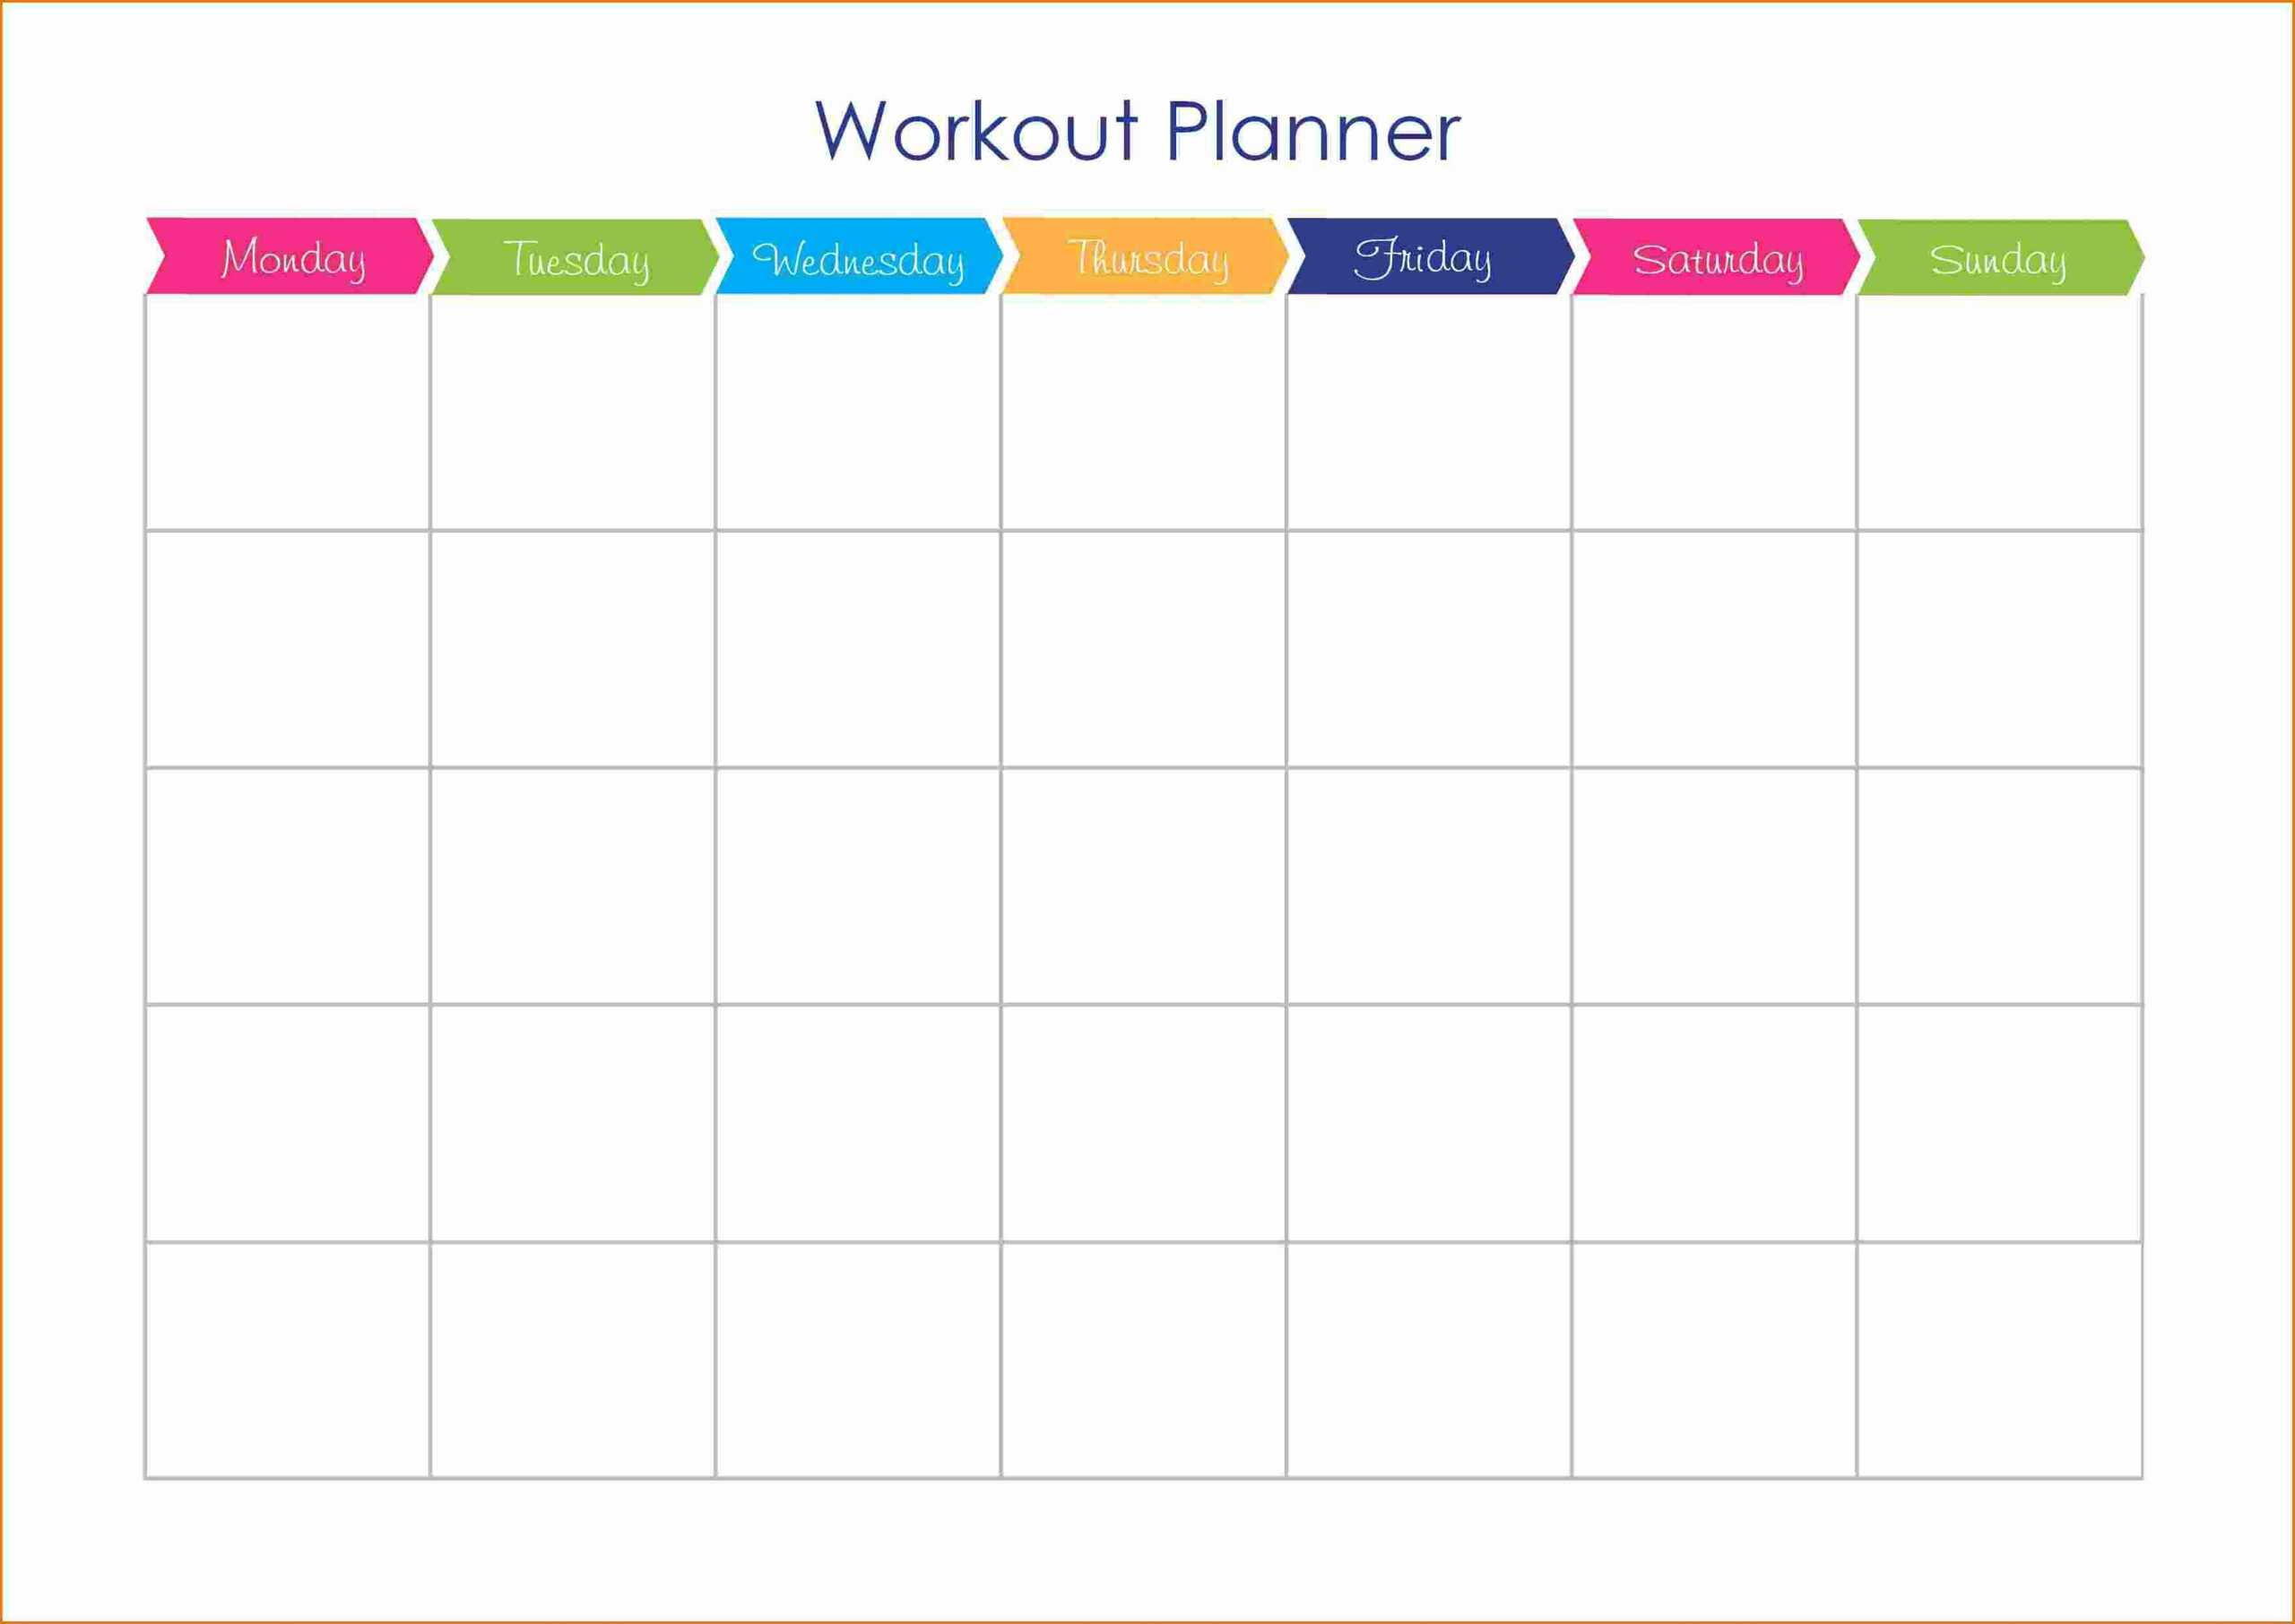 Workout Plan Calendar Template Workout And Yoga Pics Intended For Blank Workout Schedule Template